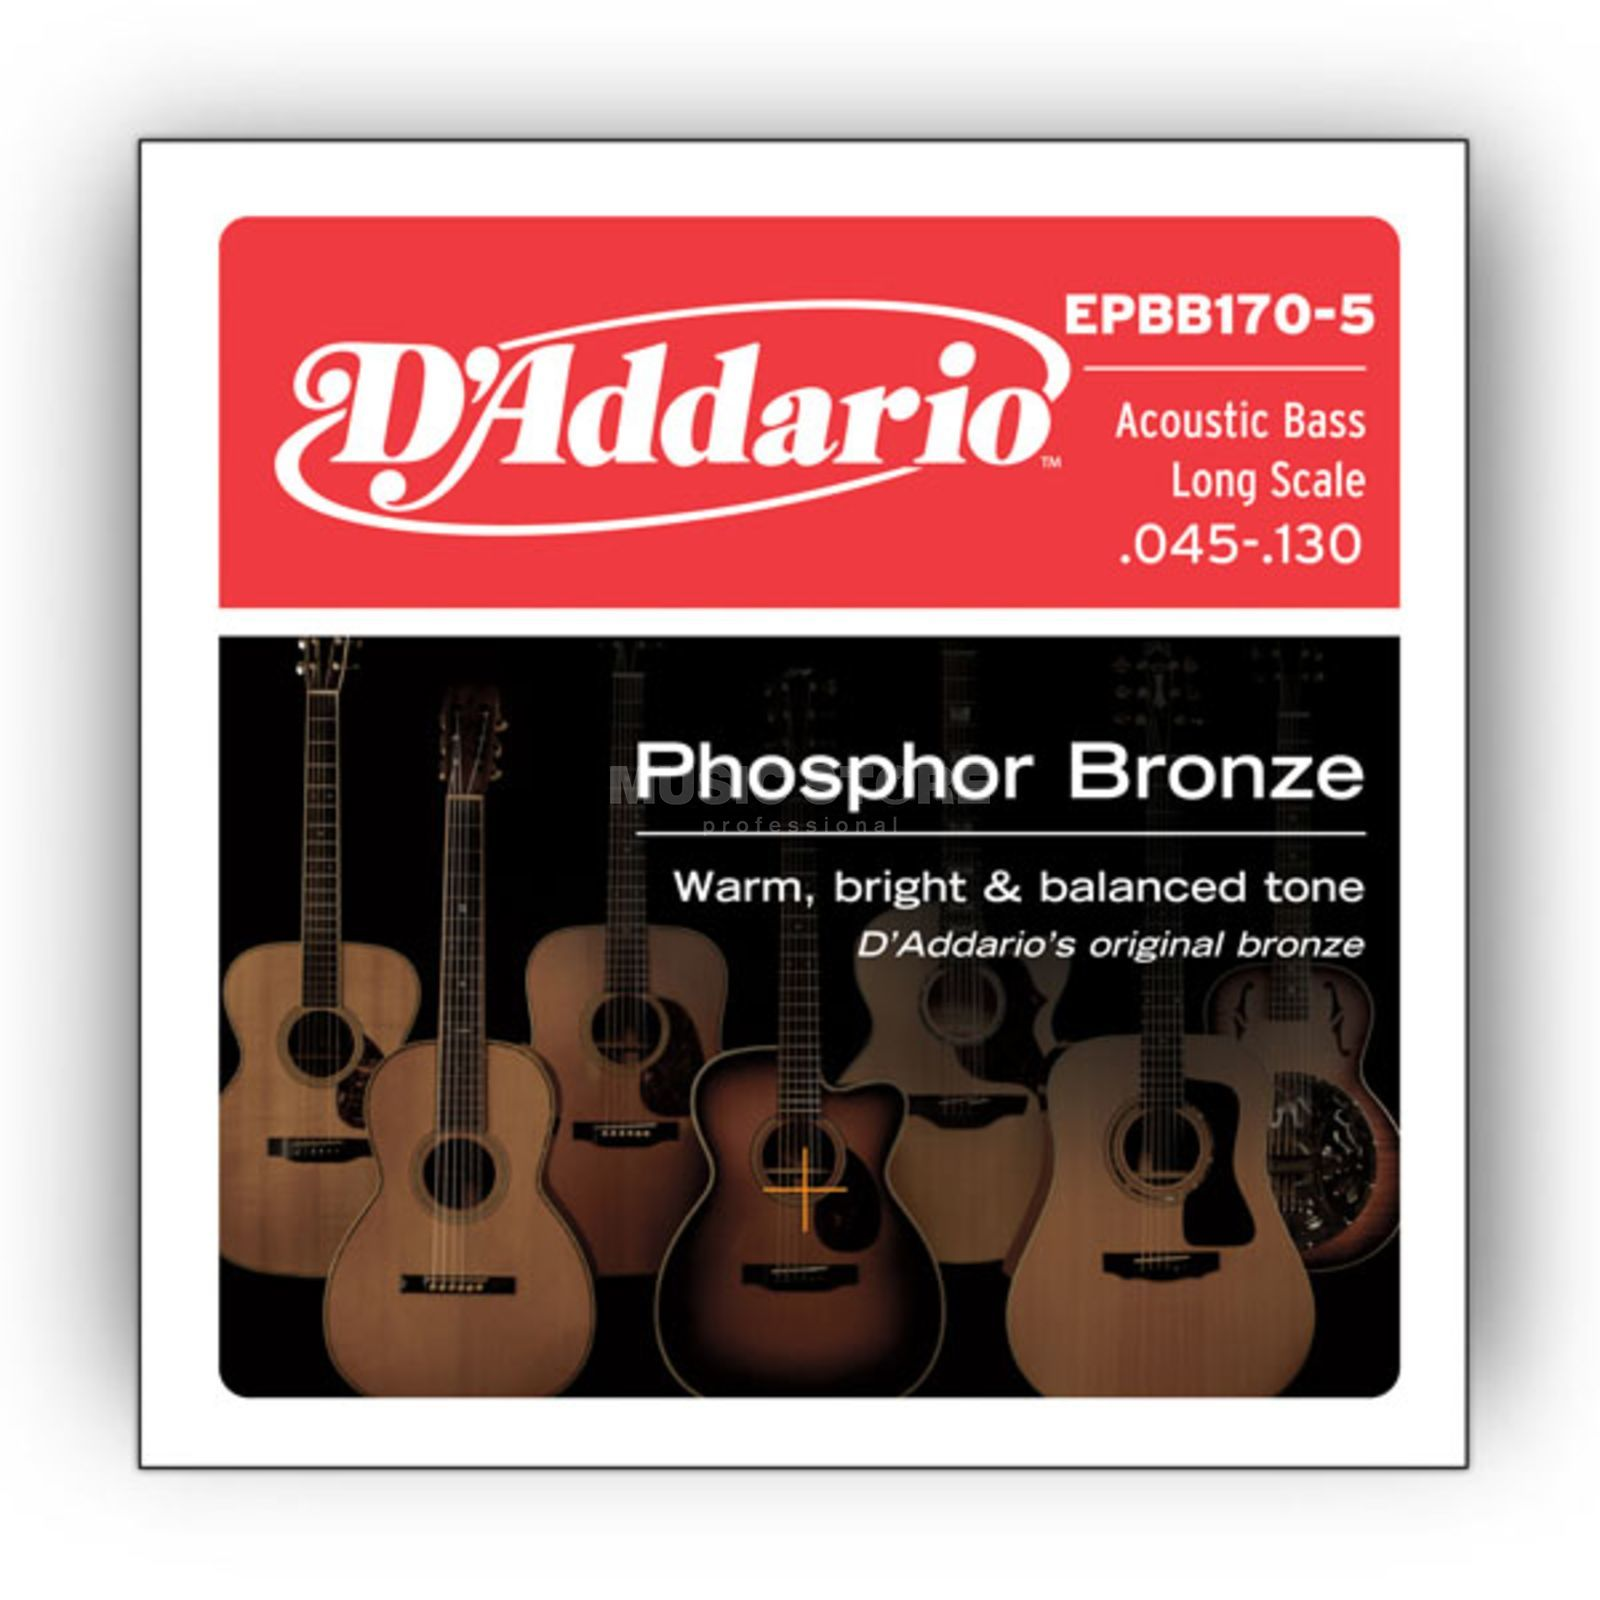 D'Addario Acoustic Bass Strings 45-130 5-String Product Image